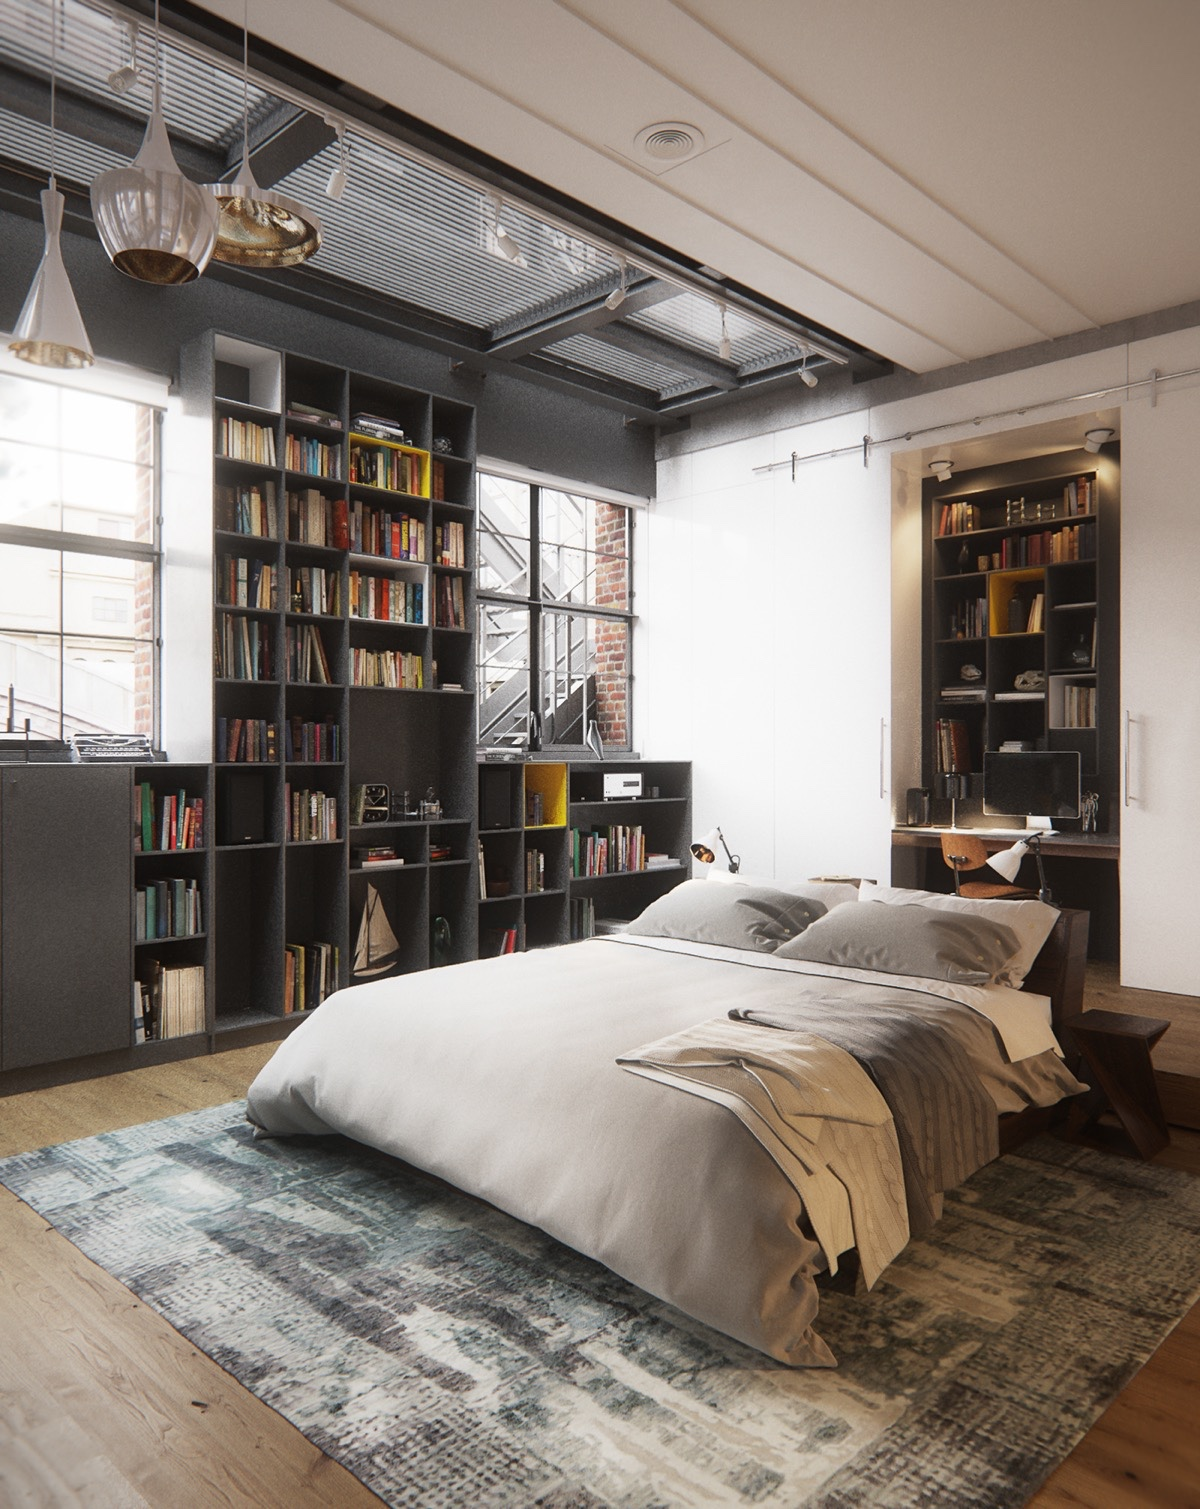 Cozy-Chic-Bedroom-New-York-City-Loft